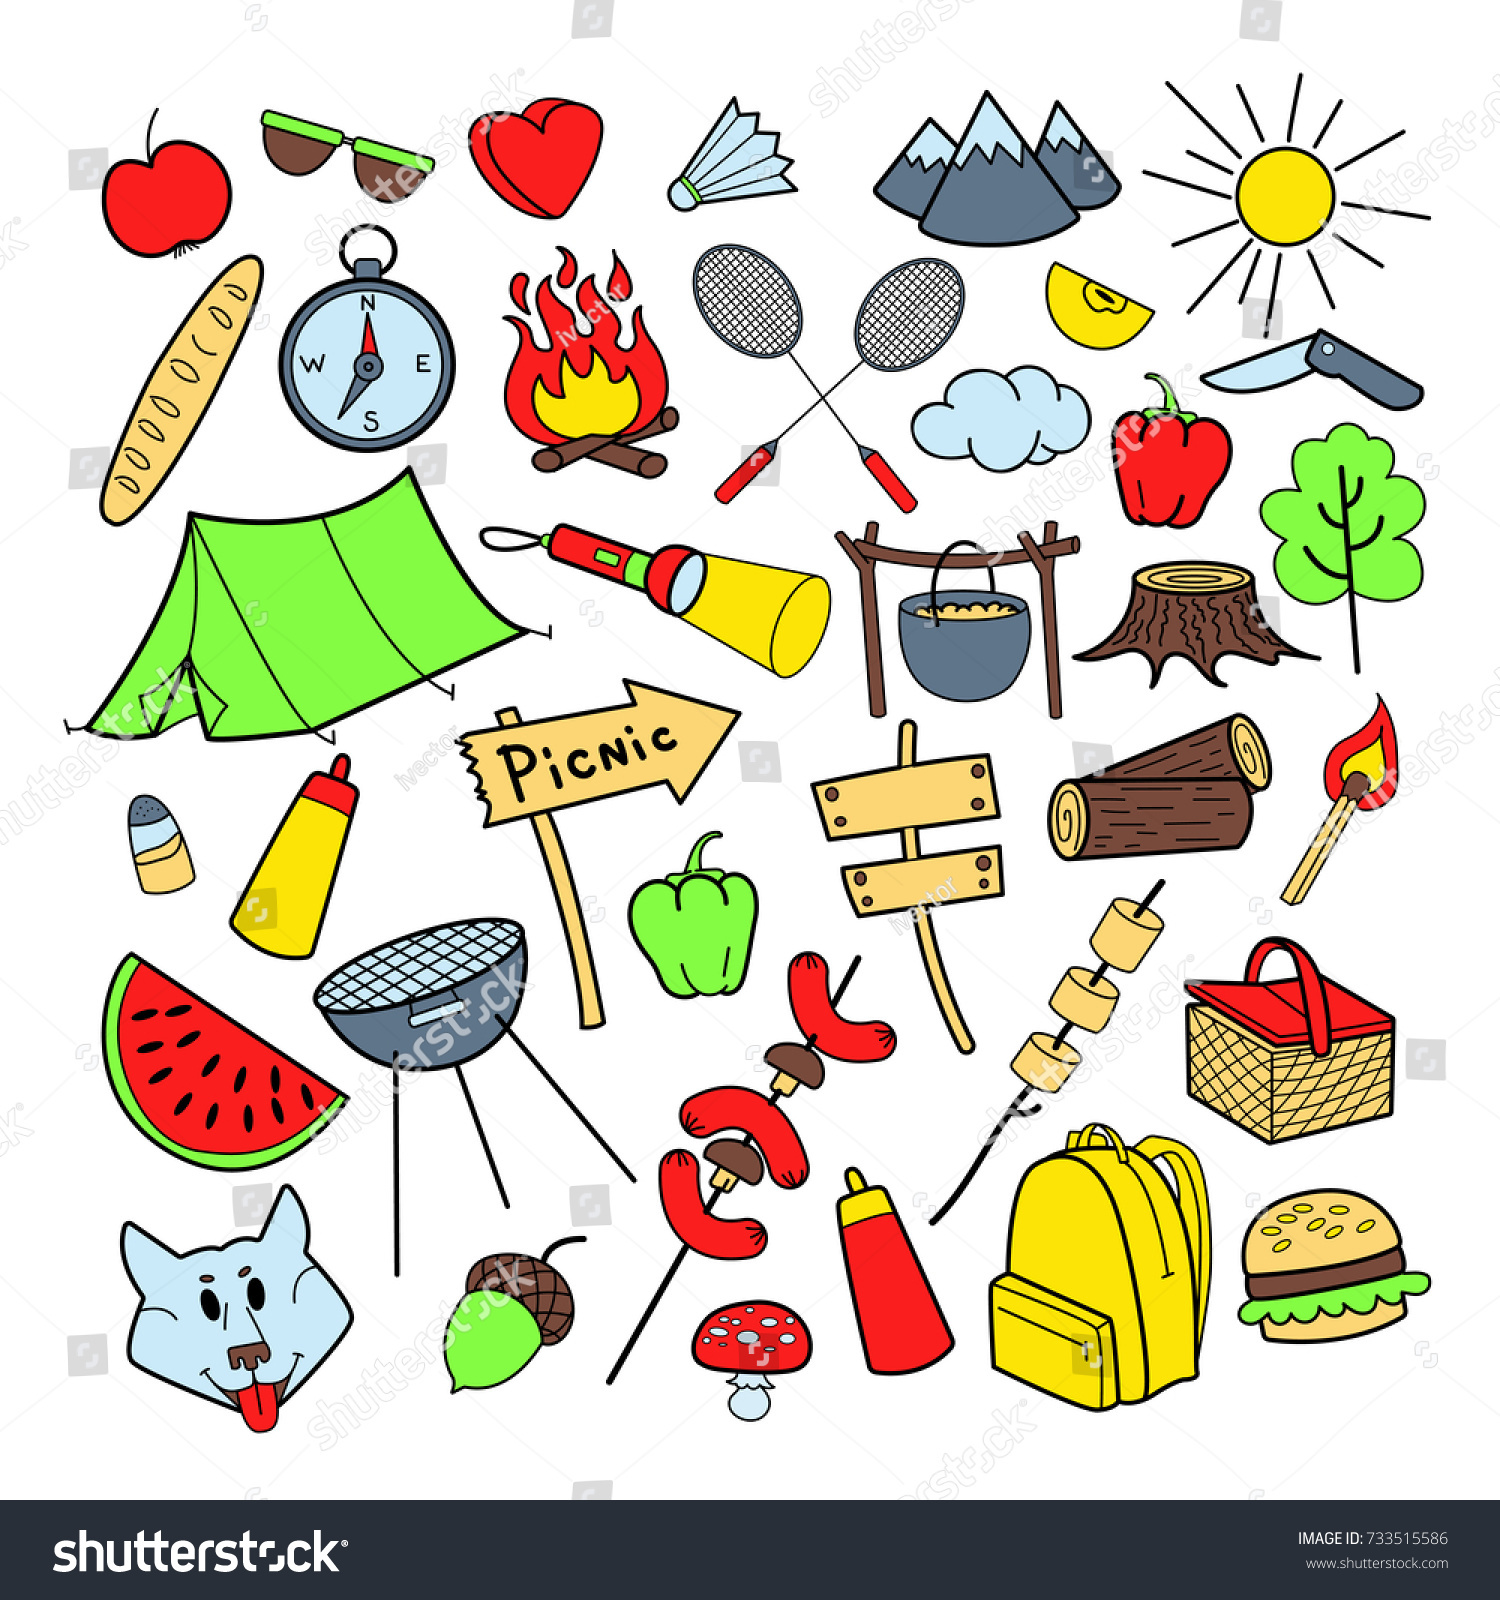 Picnic Hand Drawn Doodle Outdoor Activities Food Nature Camping Outlined Elements